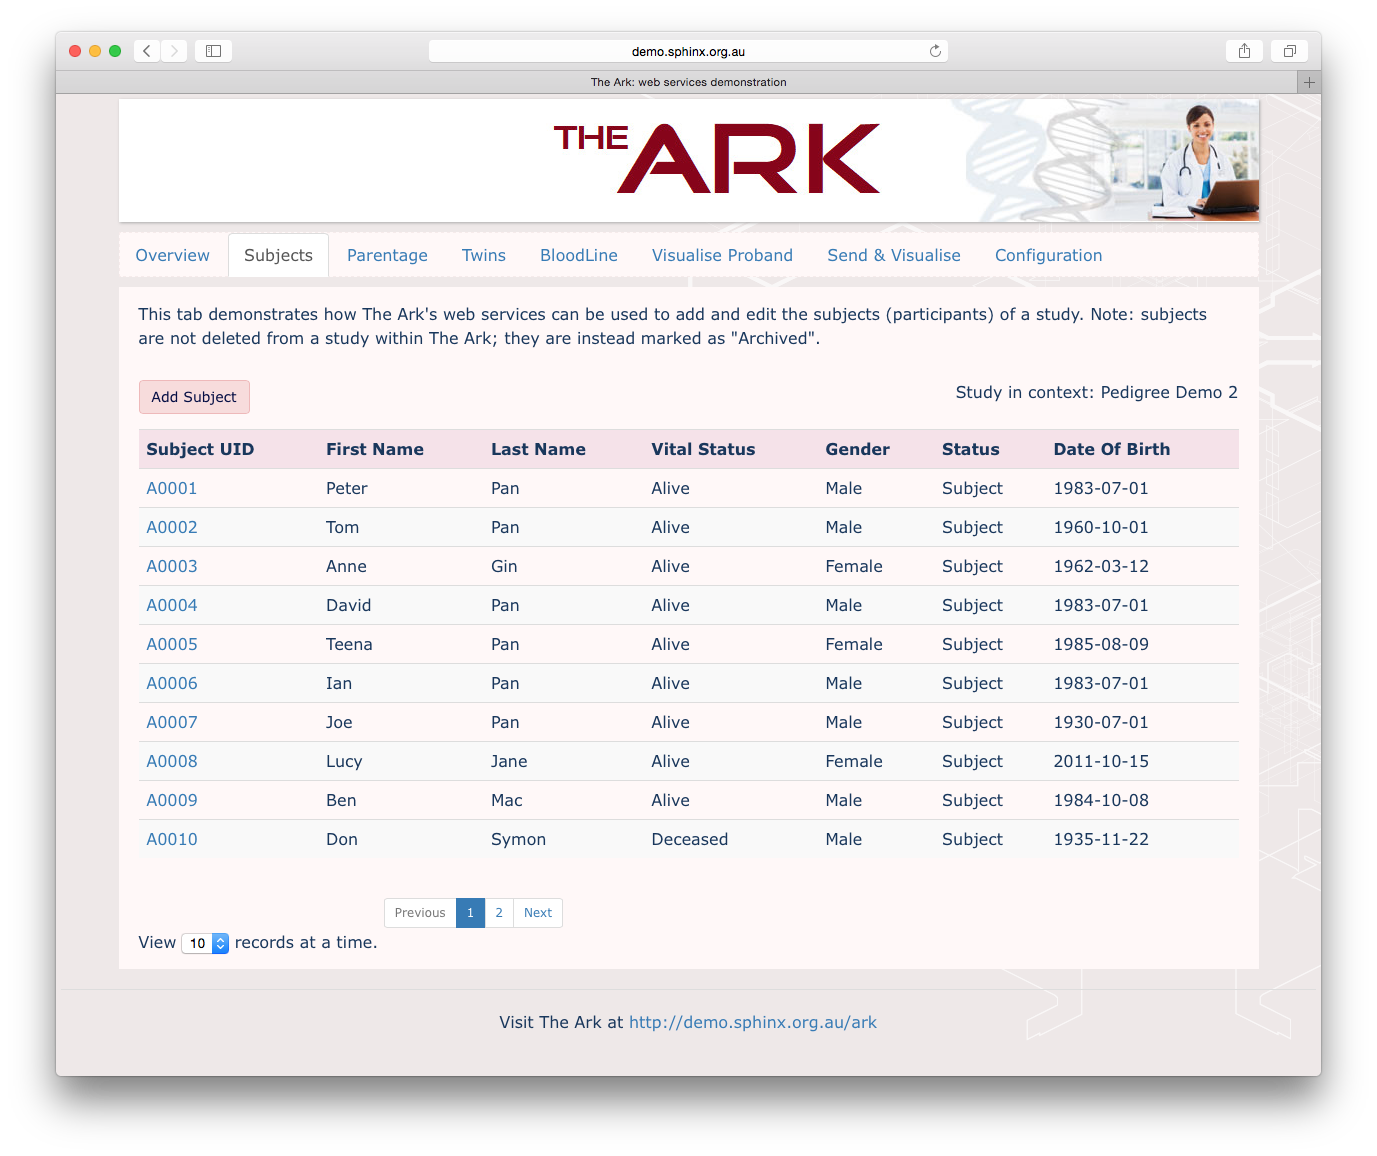 The Ark: web services demo